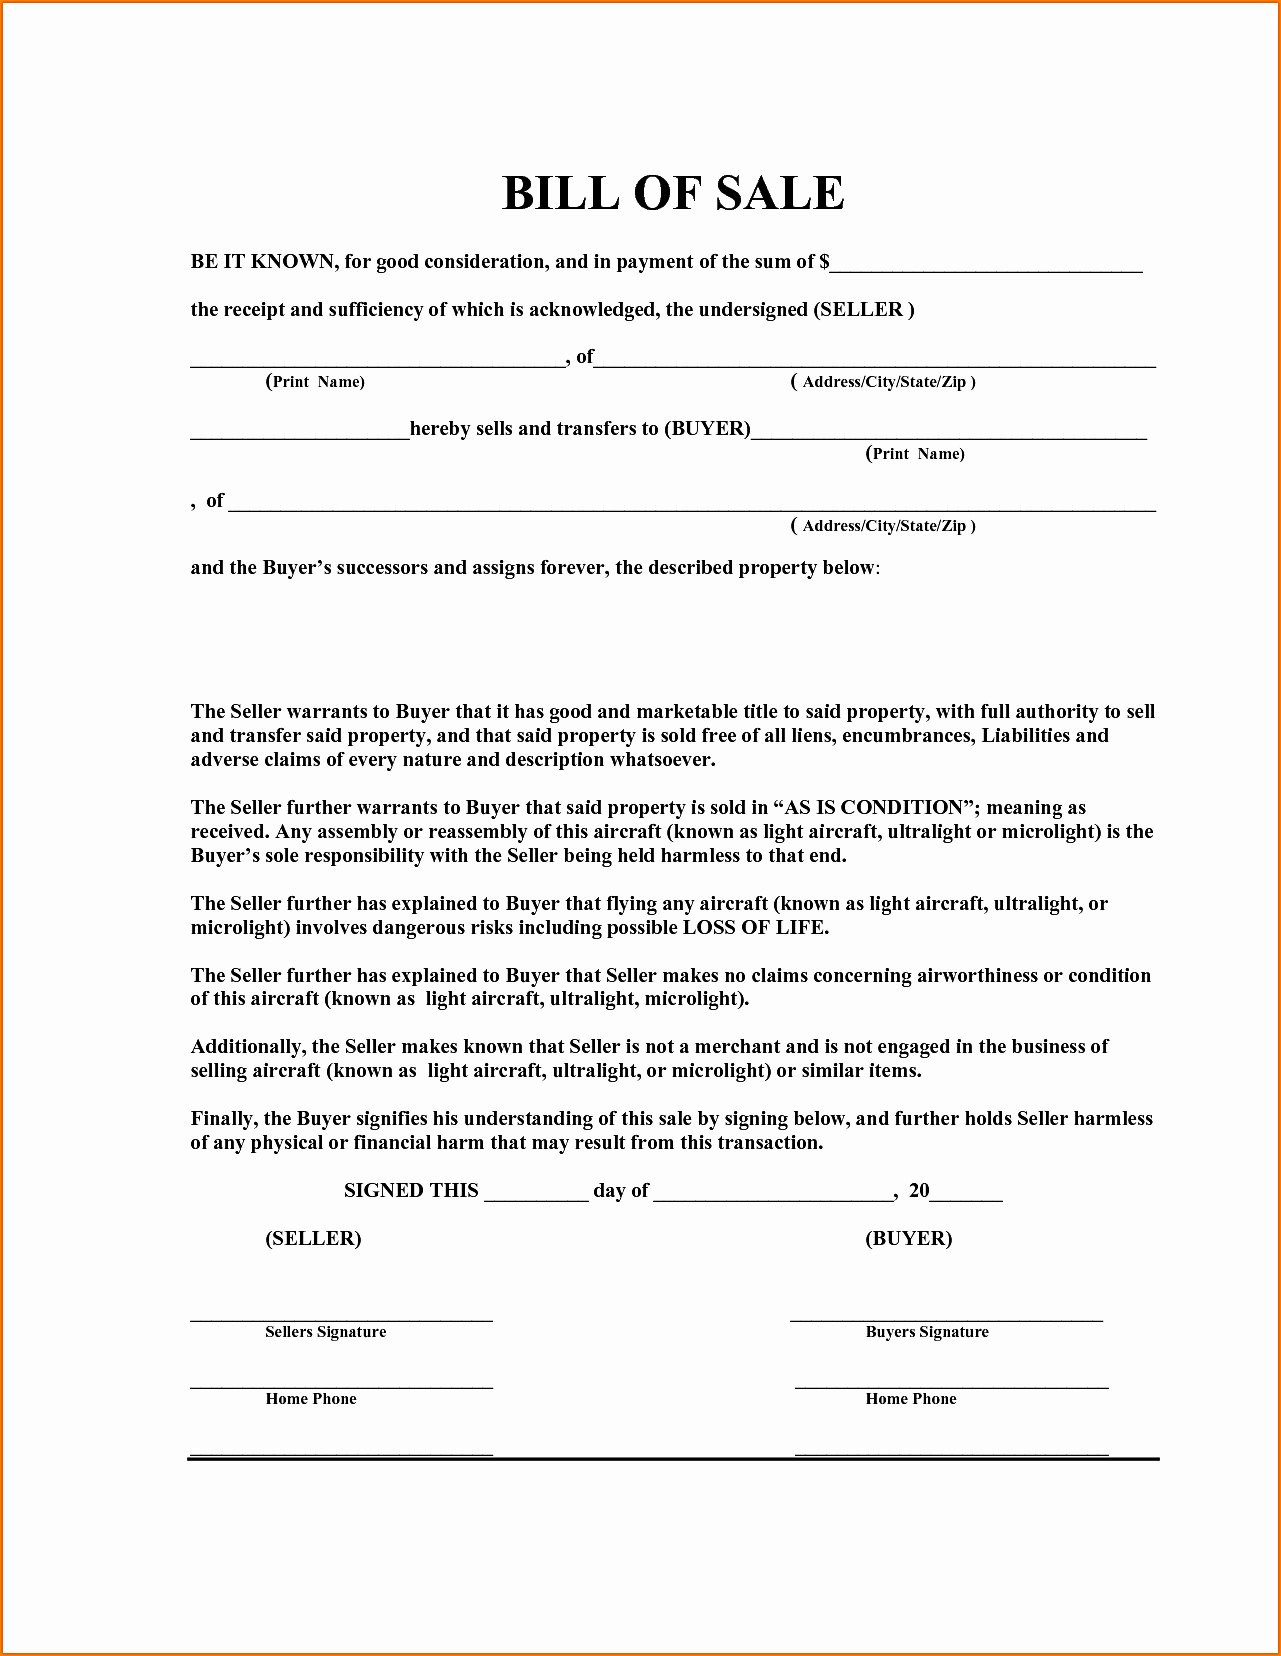 Bill Sale Word Template Example Mughals